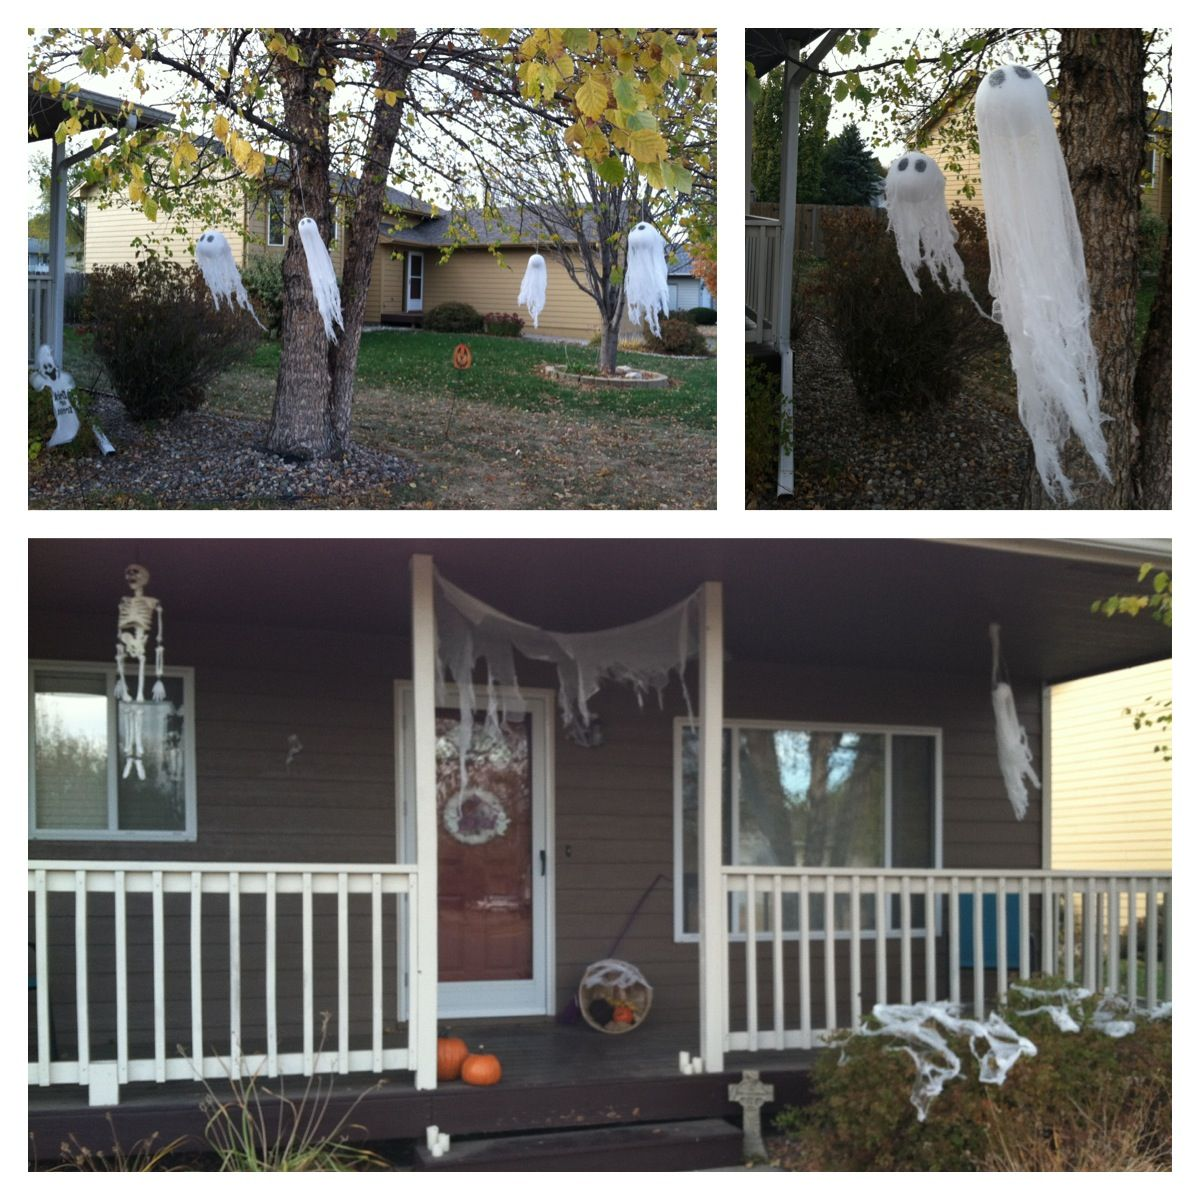 Halloween decor outside my house! Turning our House into a Home